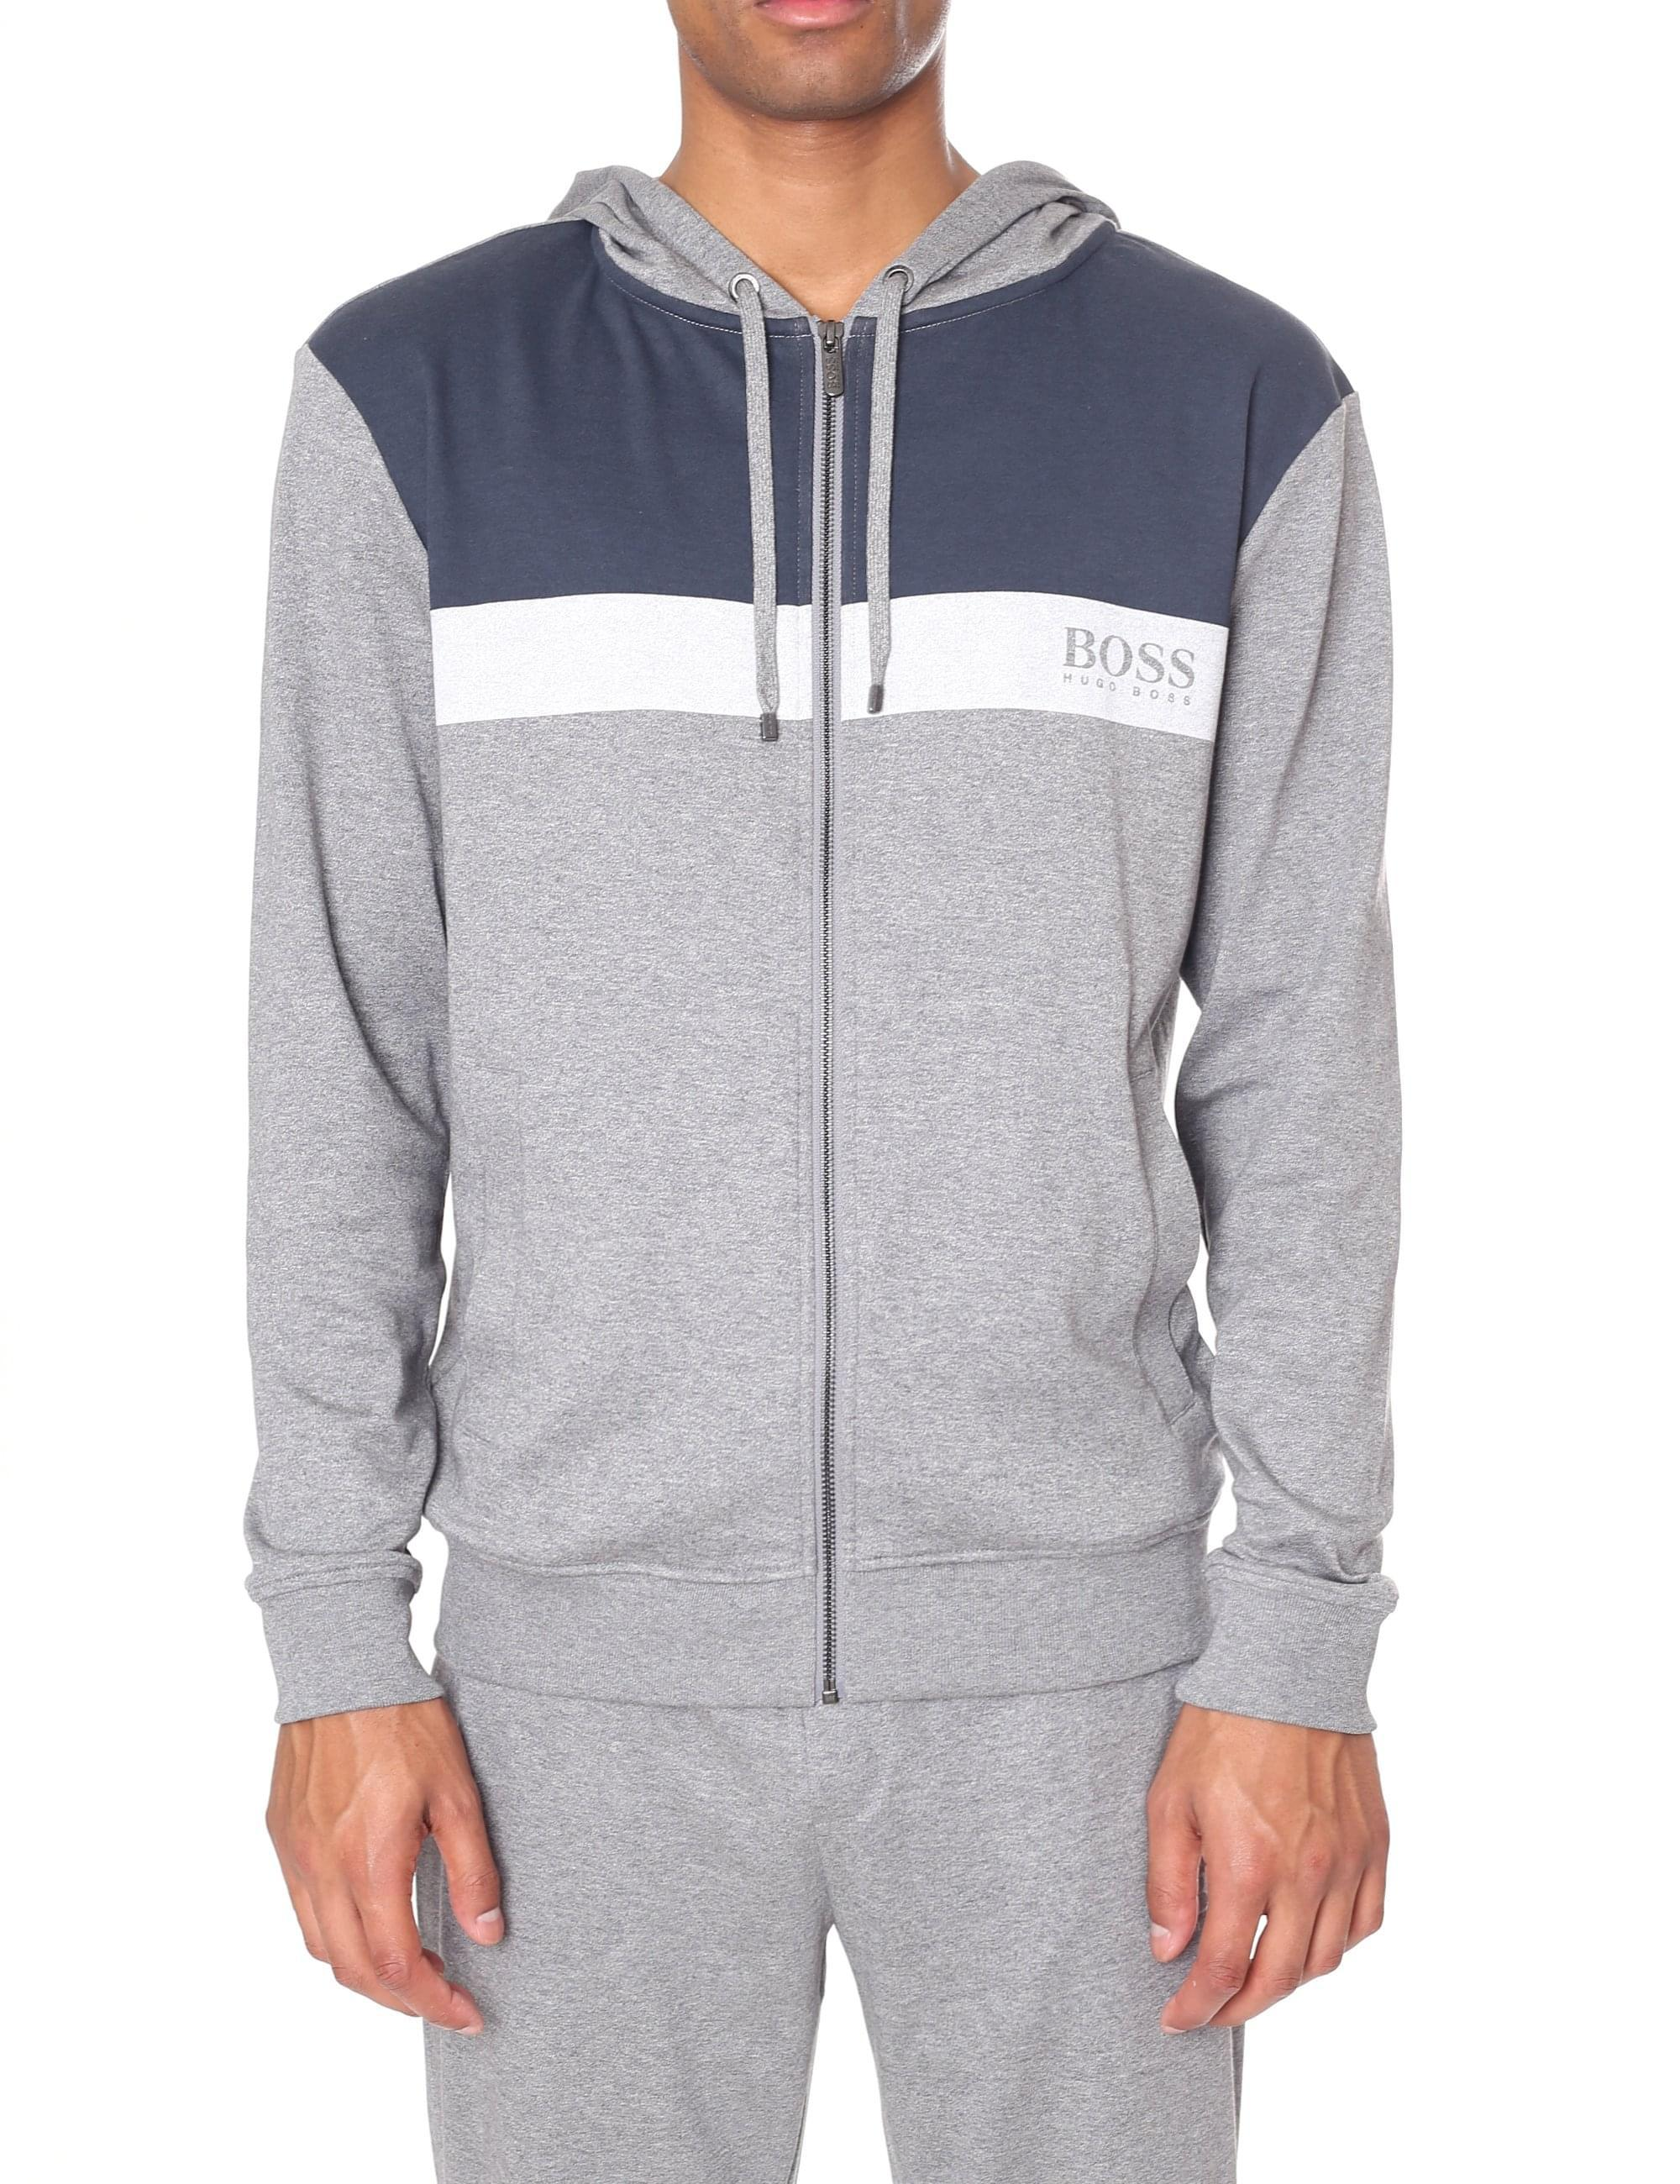 2f719337315 BOSS Zip Through Hooded Home Leisure Sweat Top in Gray for Men - Lyst